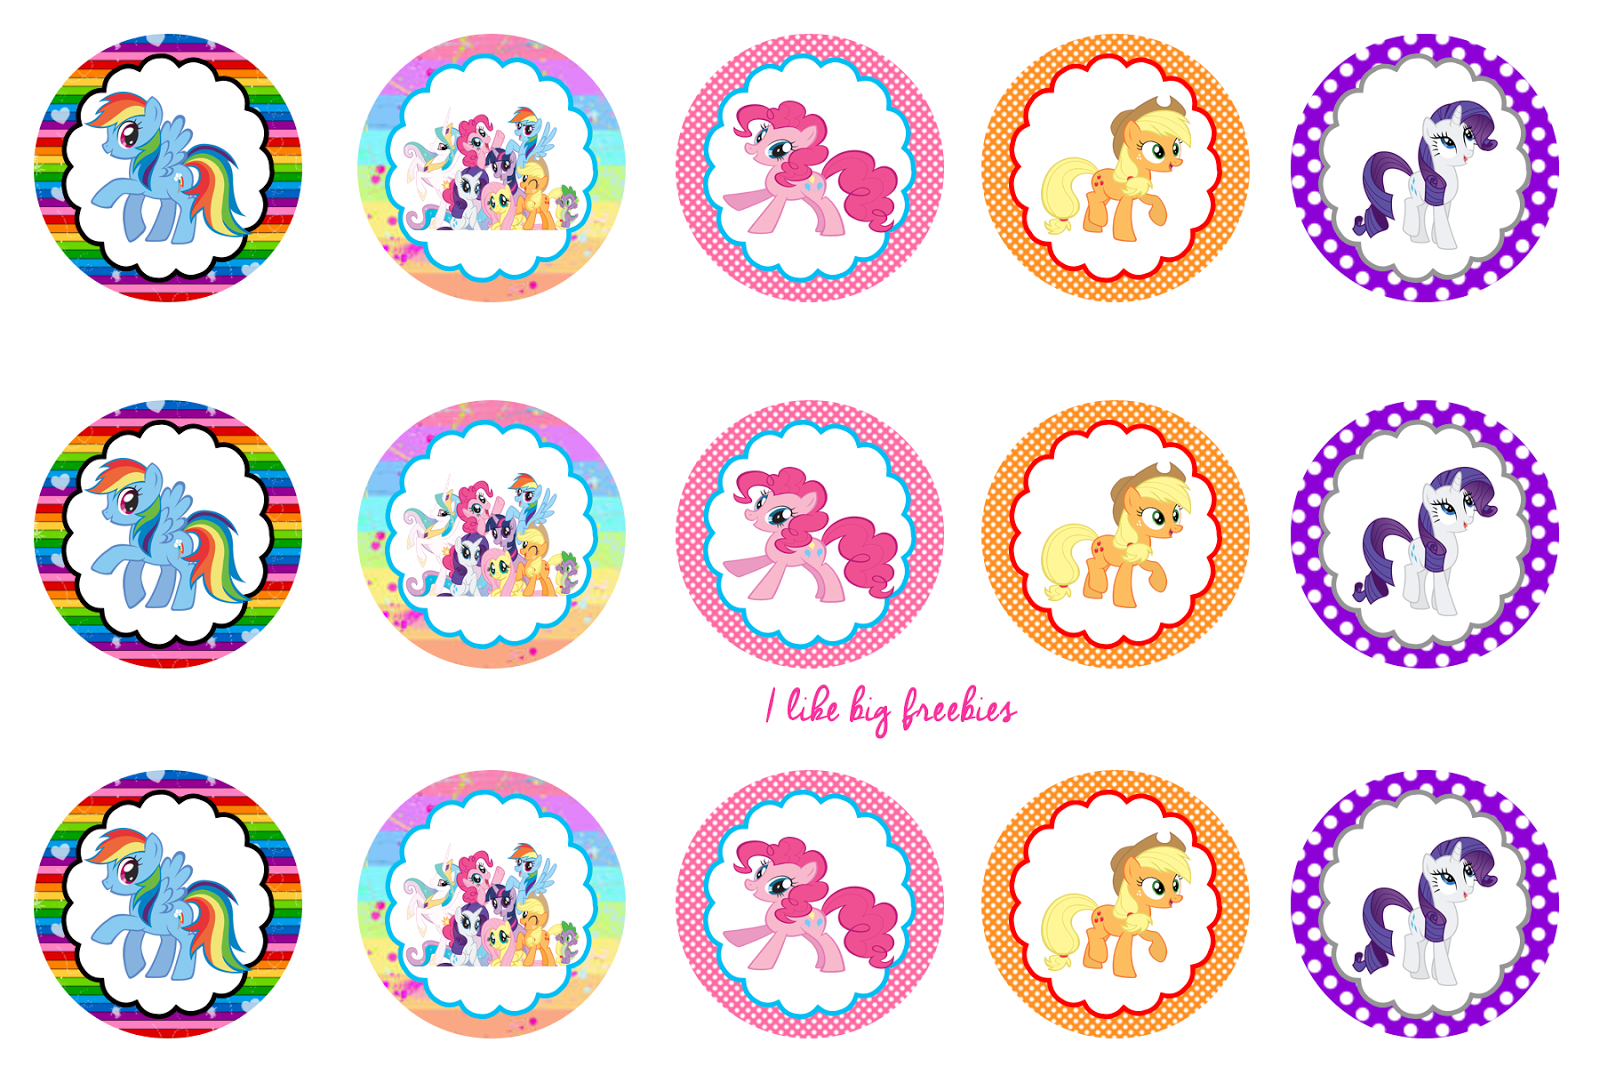 Free Bottle Cap Printables   My Little Pony Cupcake Ideas My Little - Free Printable My Little Pony Cupcake Toppers